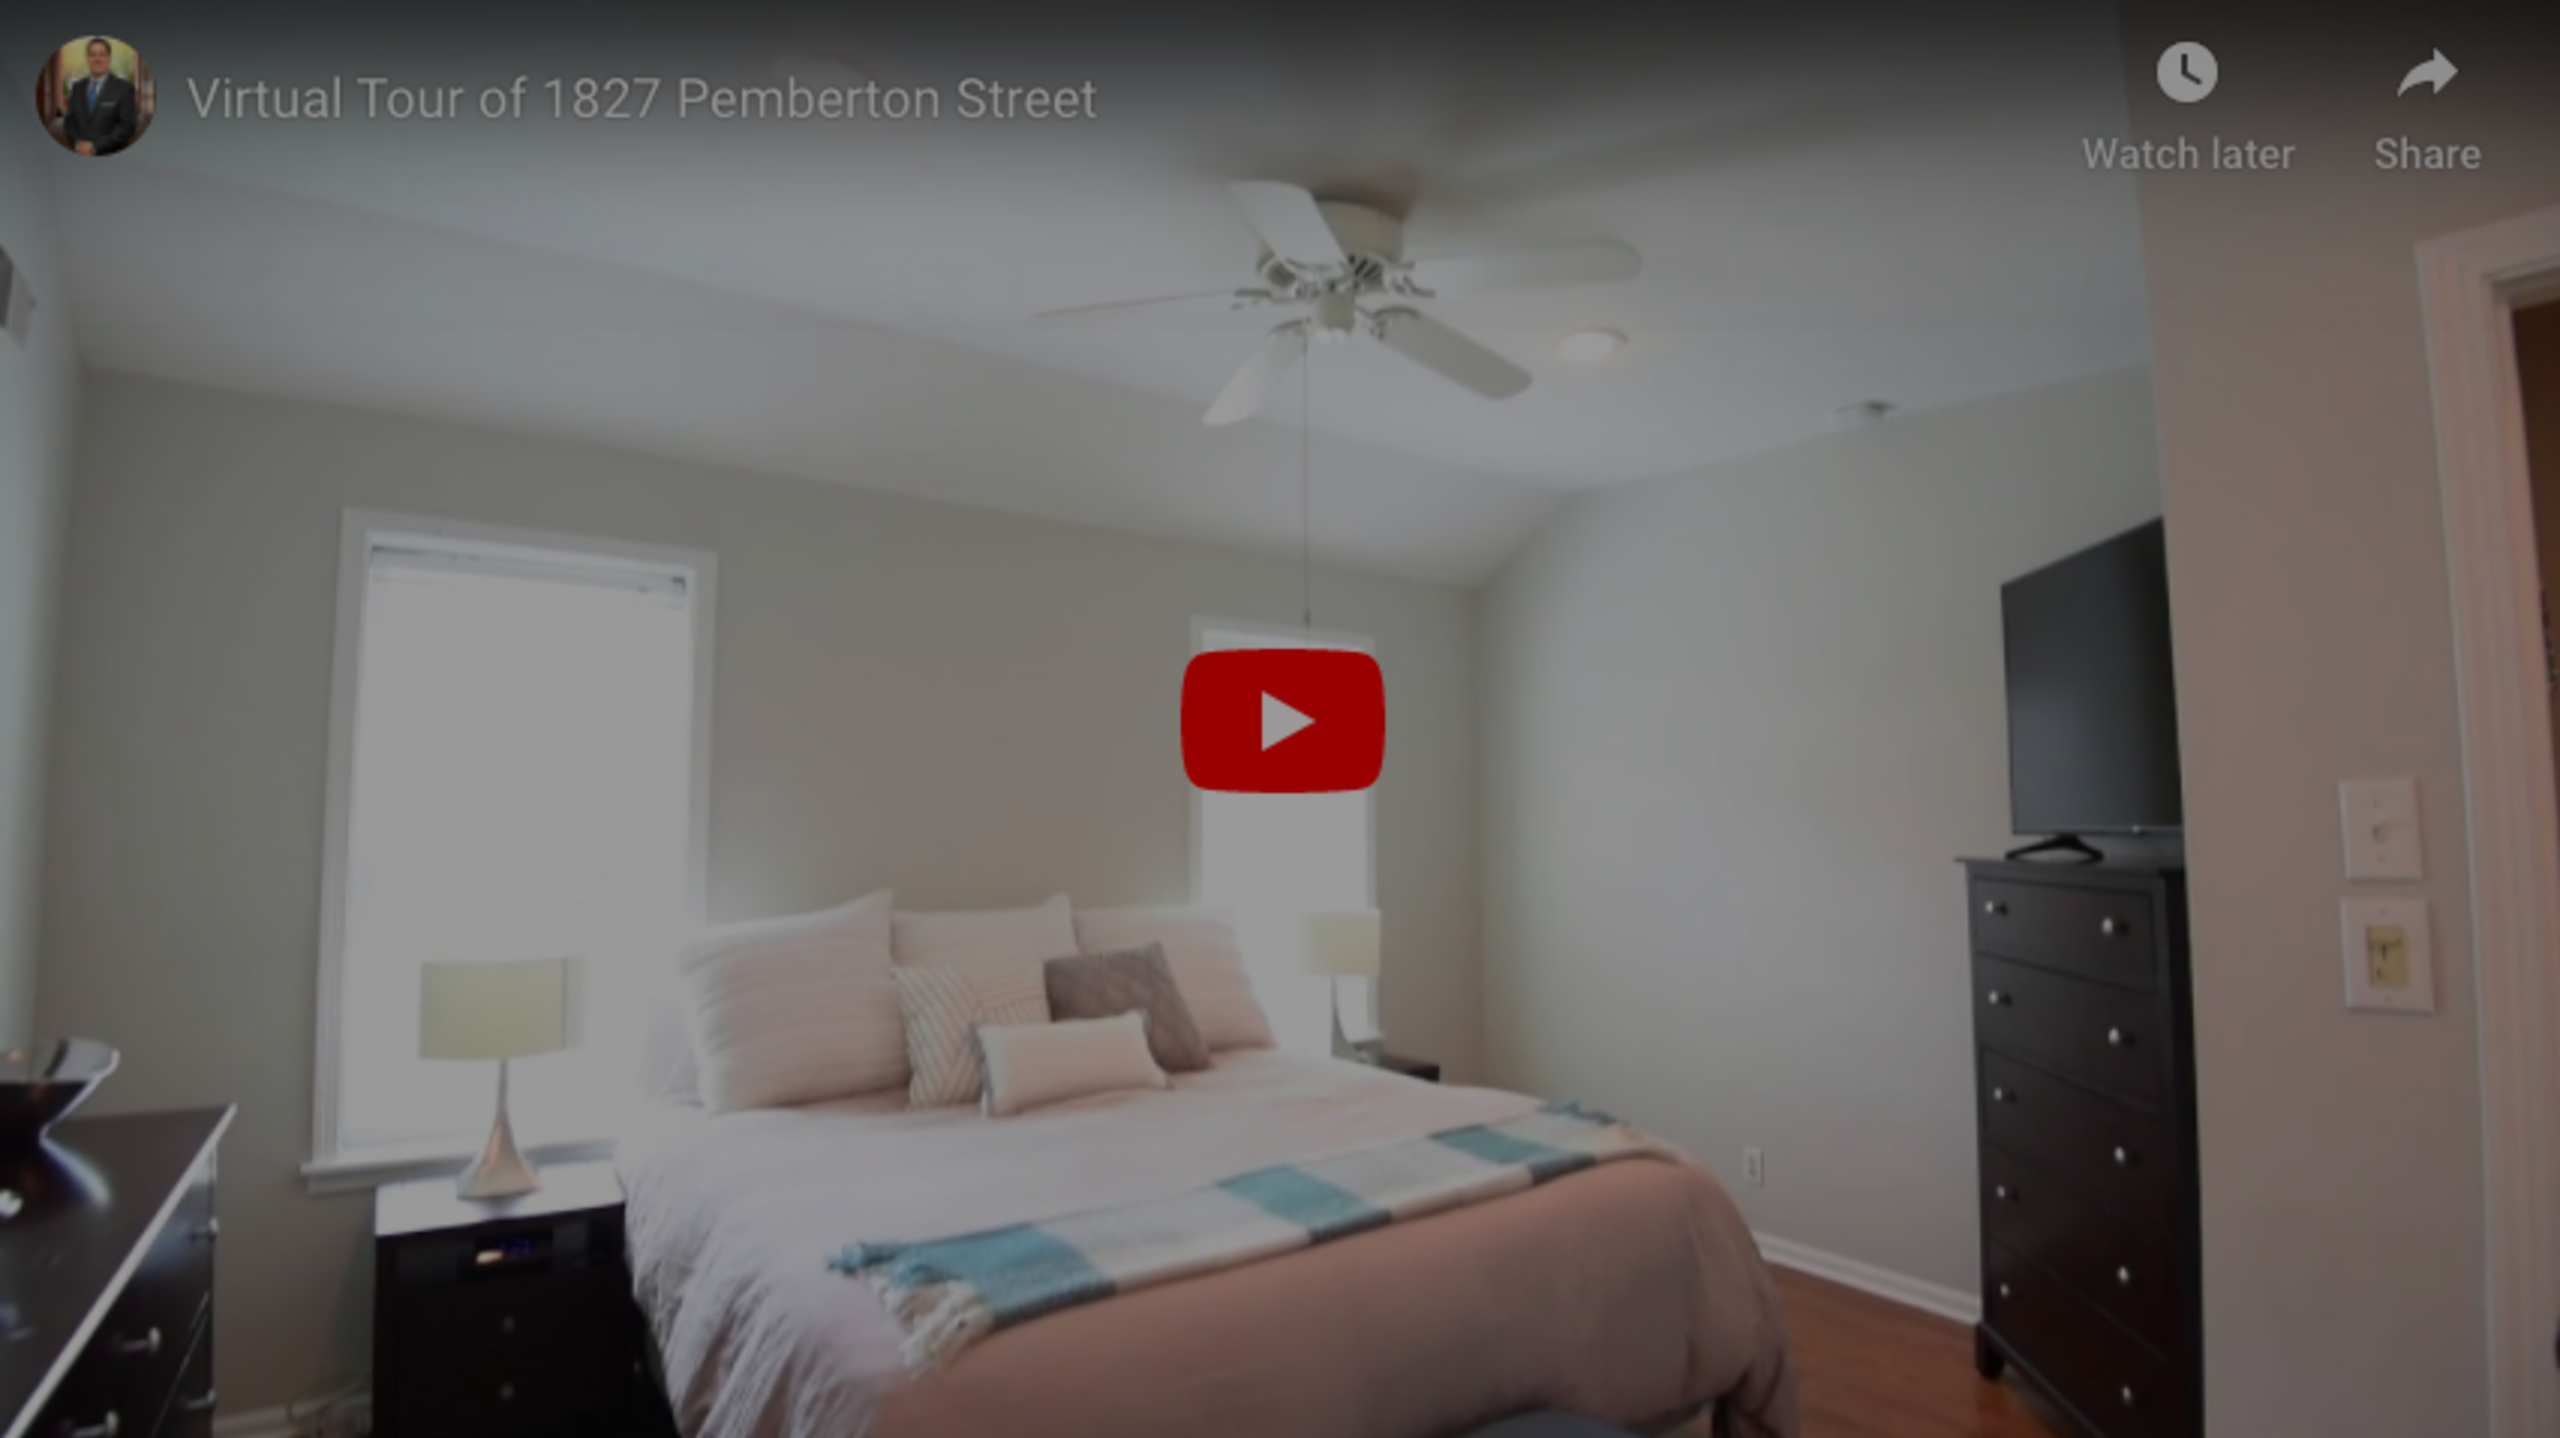 Virtual Tour of 1827 Pemberton Street